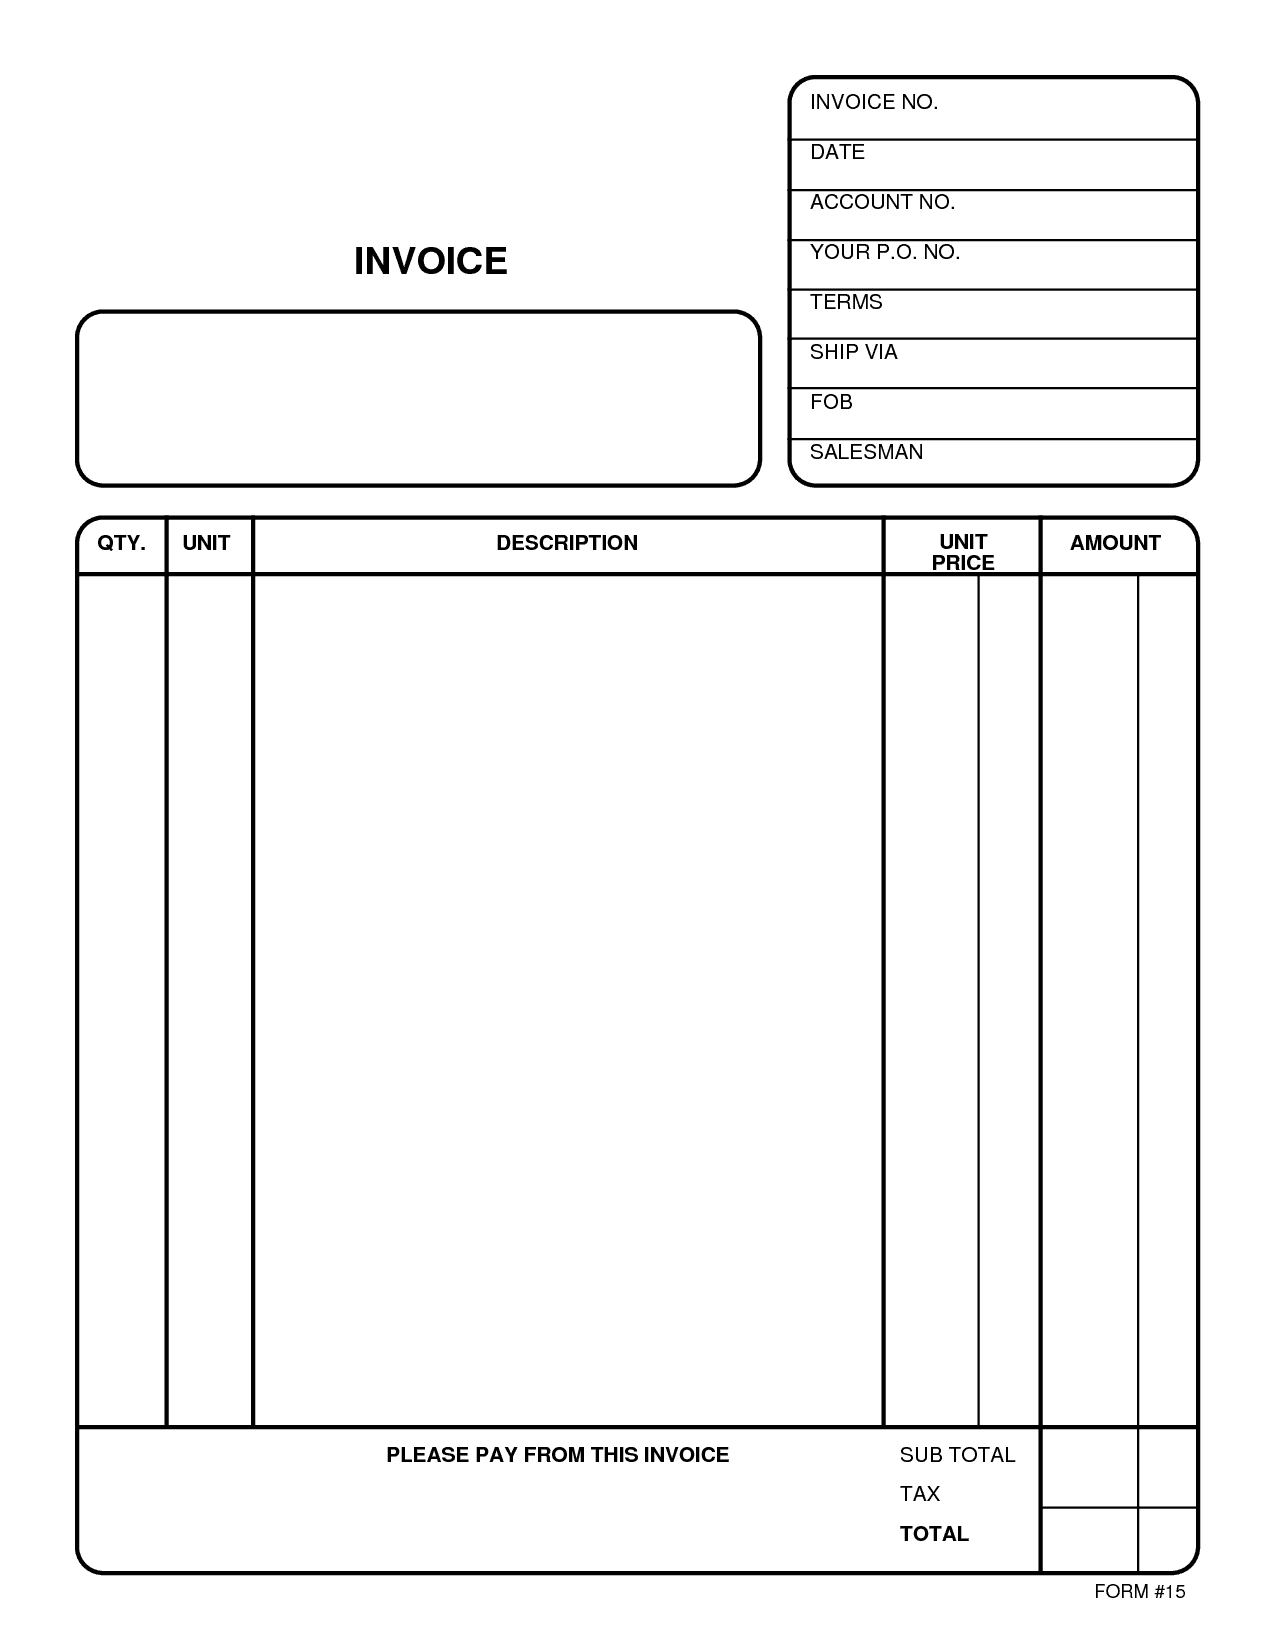 Free Printable Invoice Templates Word Invoice Template Open Office Spreadsheet Templates for Busines Spreadsheet Templates for Busines Invoice Template Free